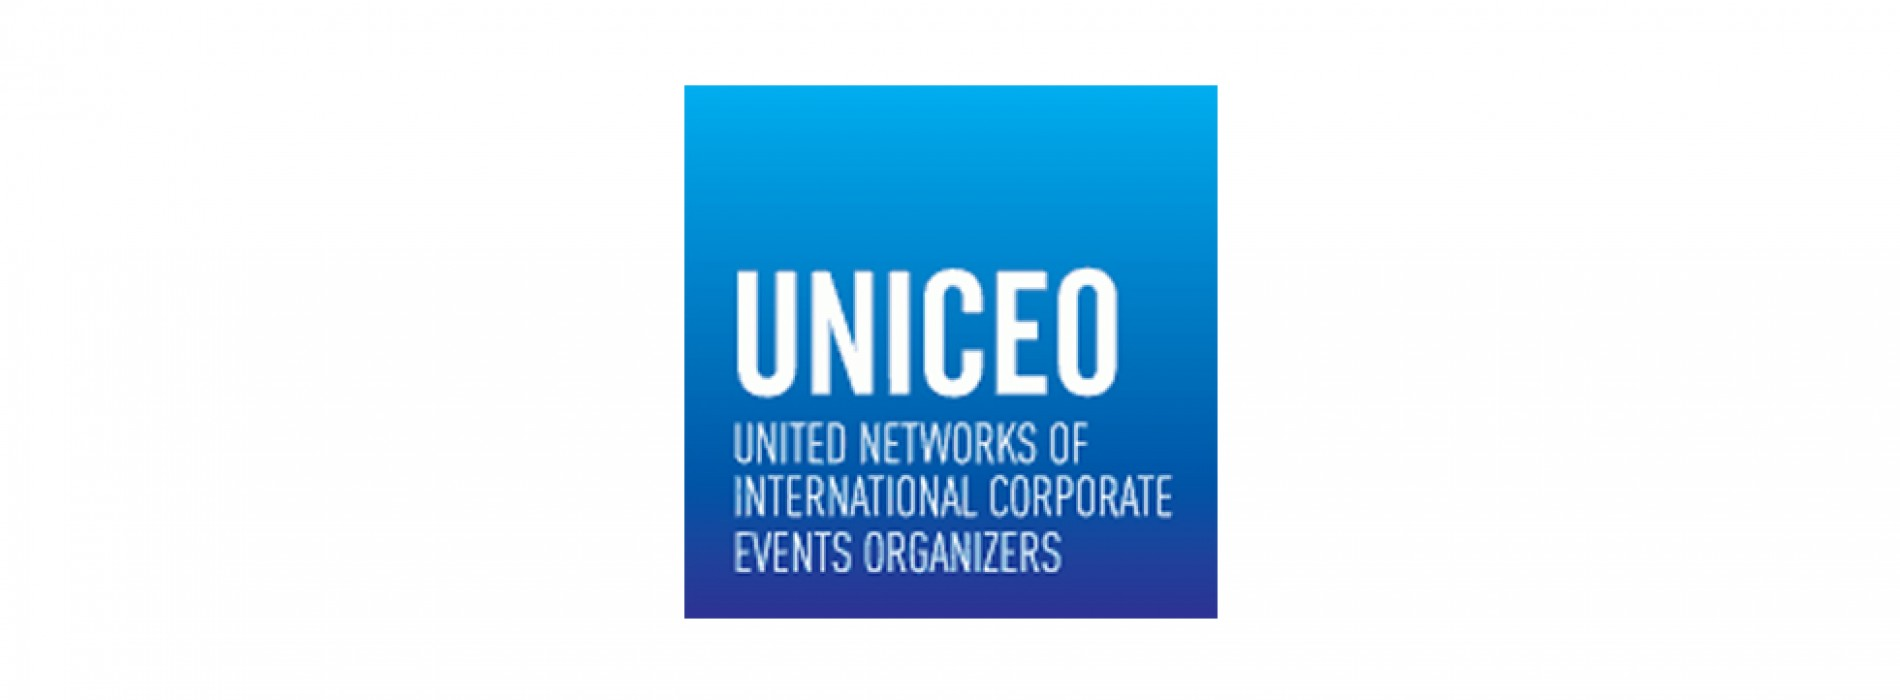 UNICEO announces its 2018 European Congress